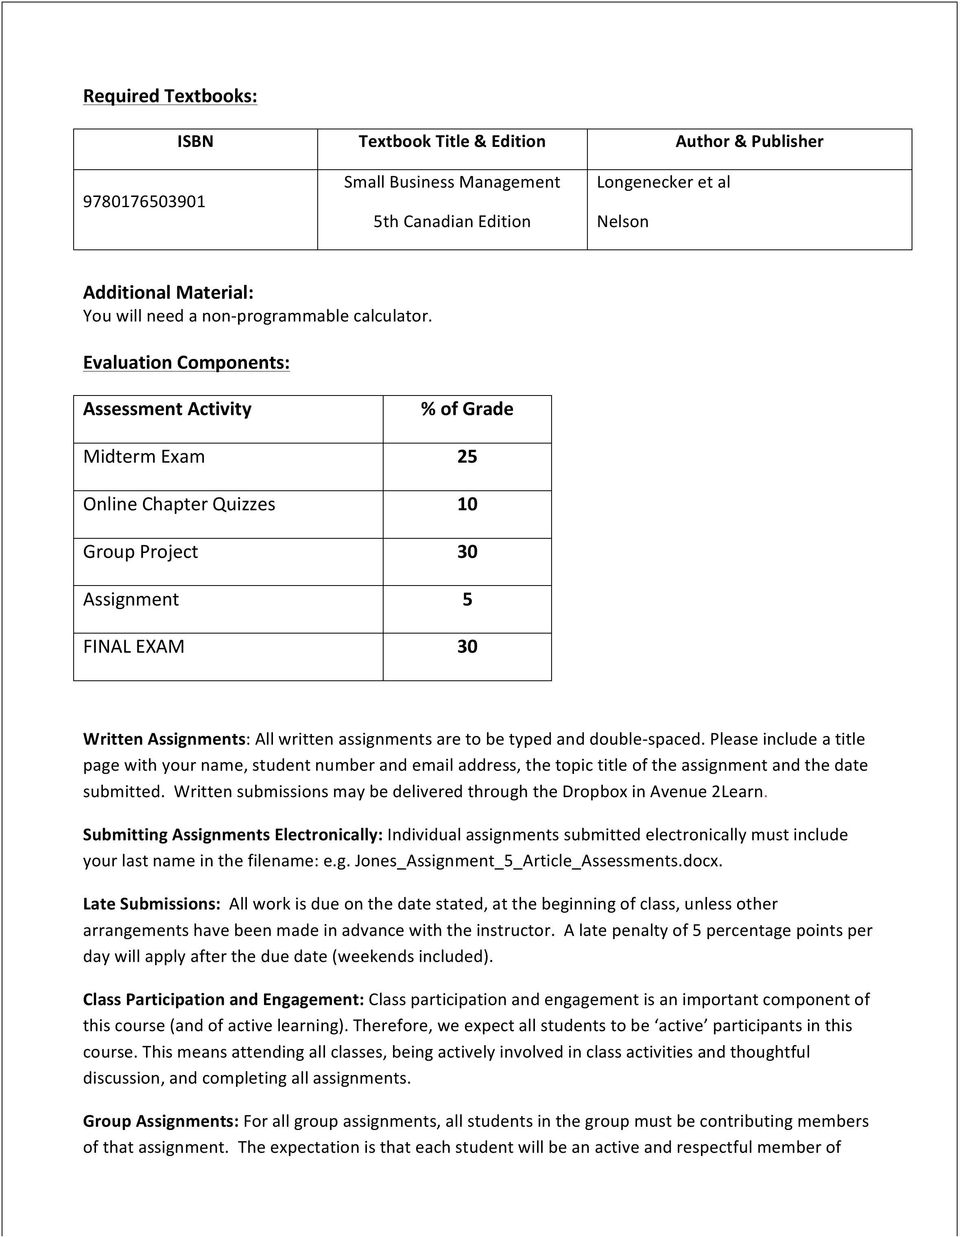 Evaluation Components: Assessment Activity Midterm Exam Online Chapter Quizzes Group Project Assignment FINAL EXAM % of Grade 25 10 30 5 30 Written Assignments: All written assignments are to be